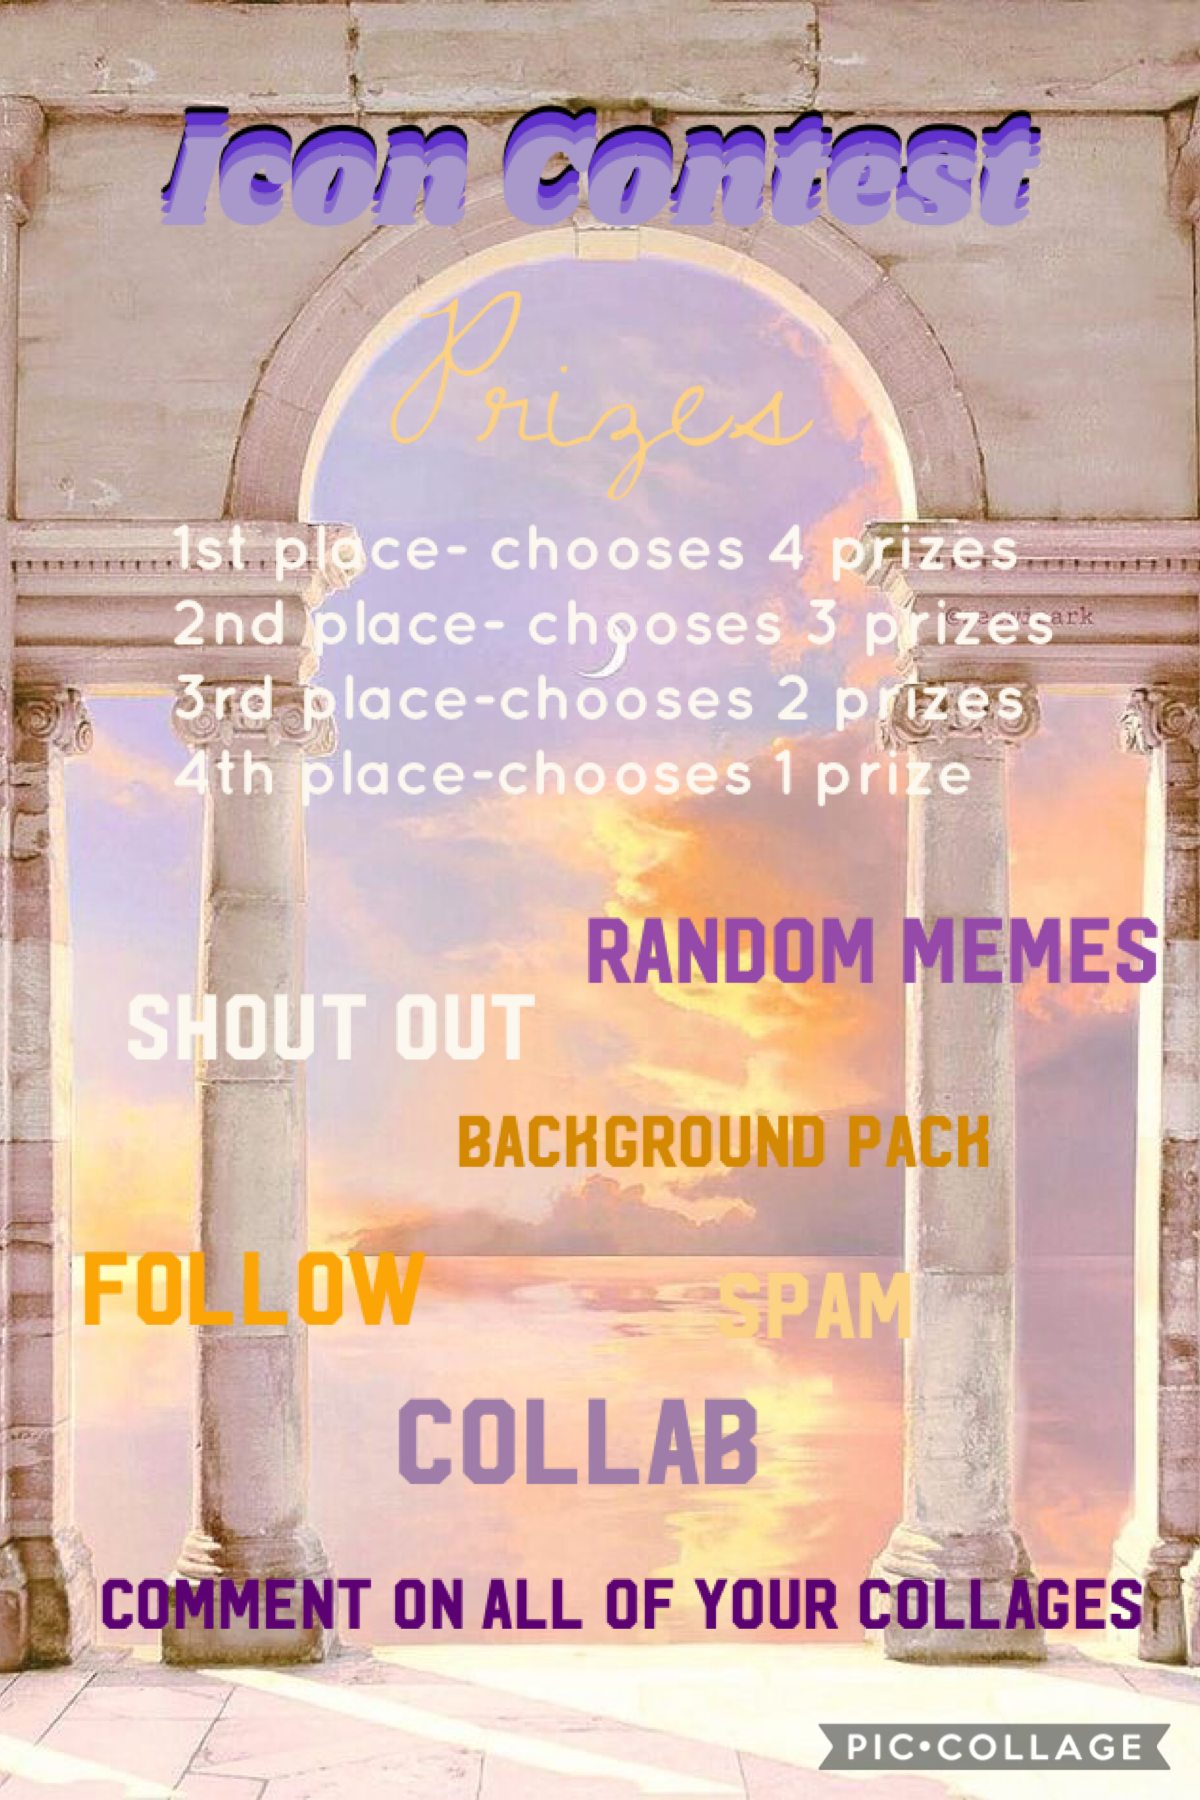 💛💜Tap💜💛                                    Winners will be posted soon! If you haven't joined yet, plz join 🙃 tysm to everyone who submitted their entry 💕